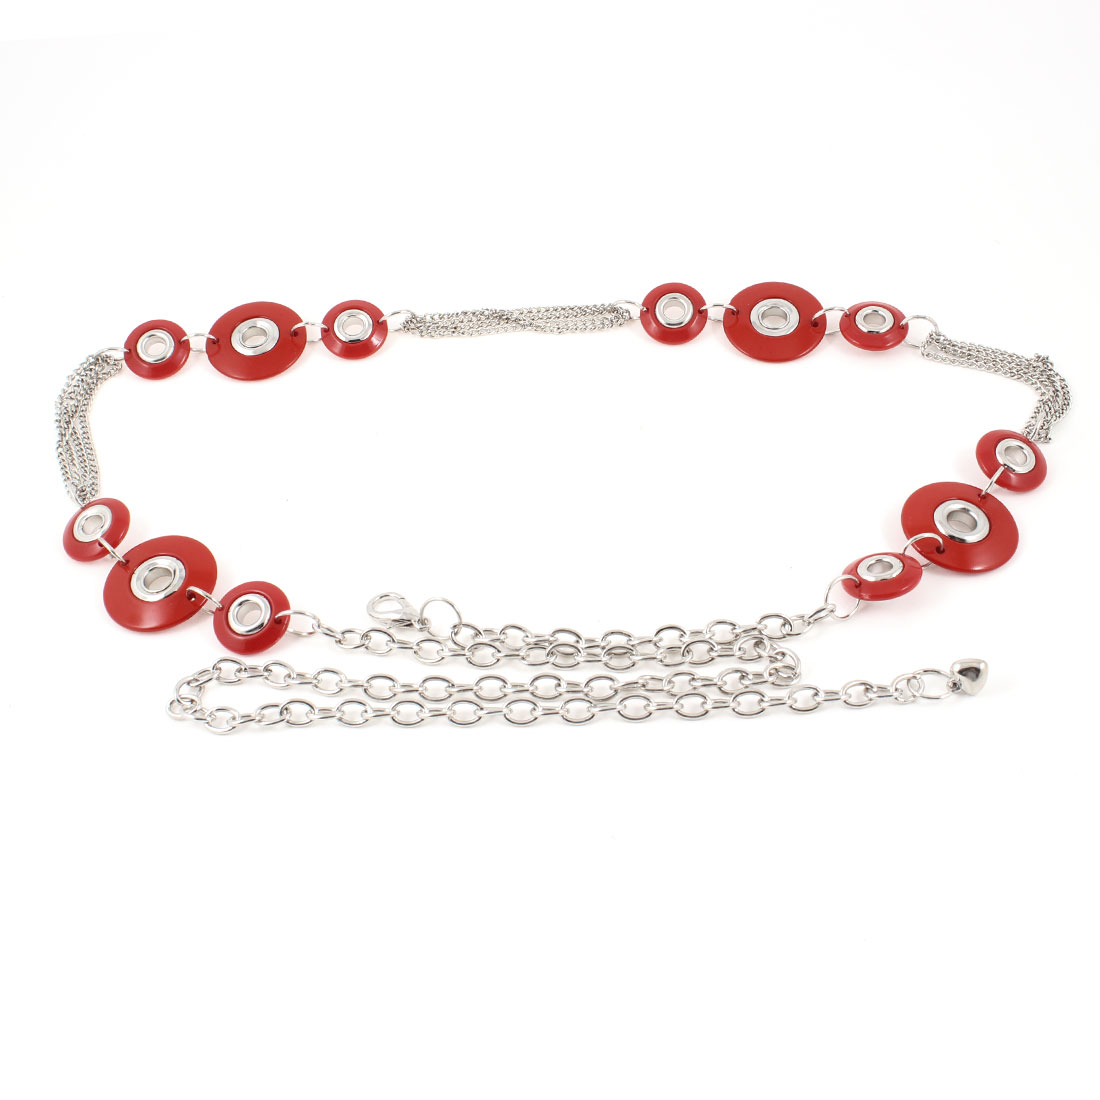 Ladies Hollow out Round Beads Linked Silver Tone Red Waist Chain Belt